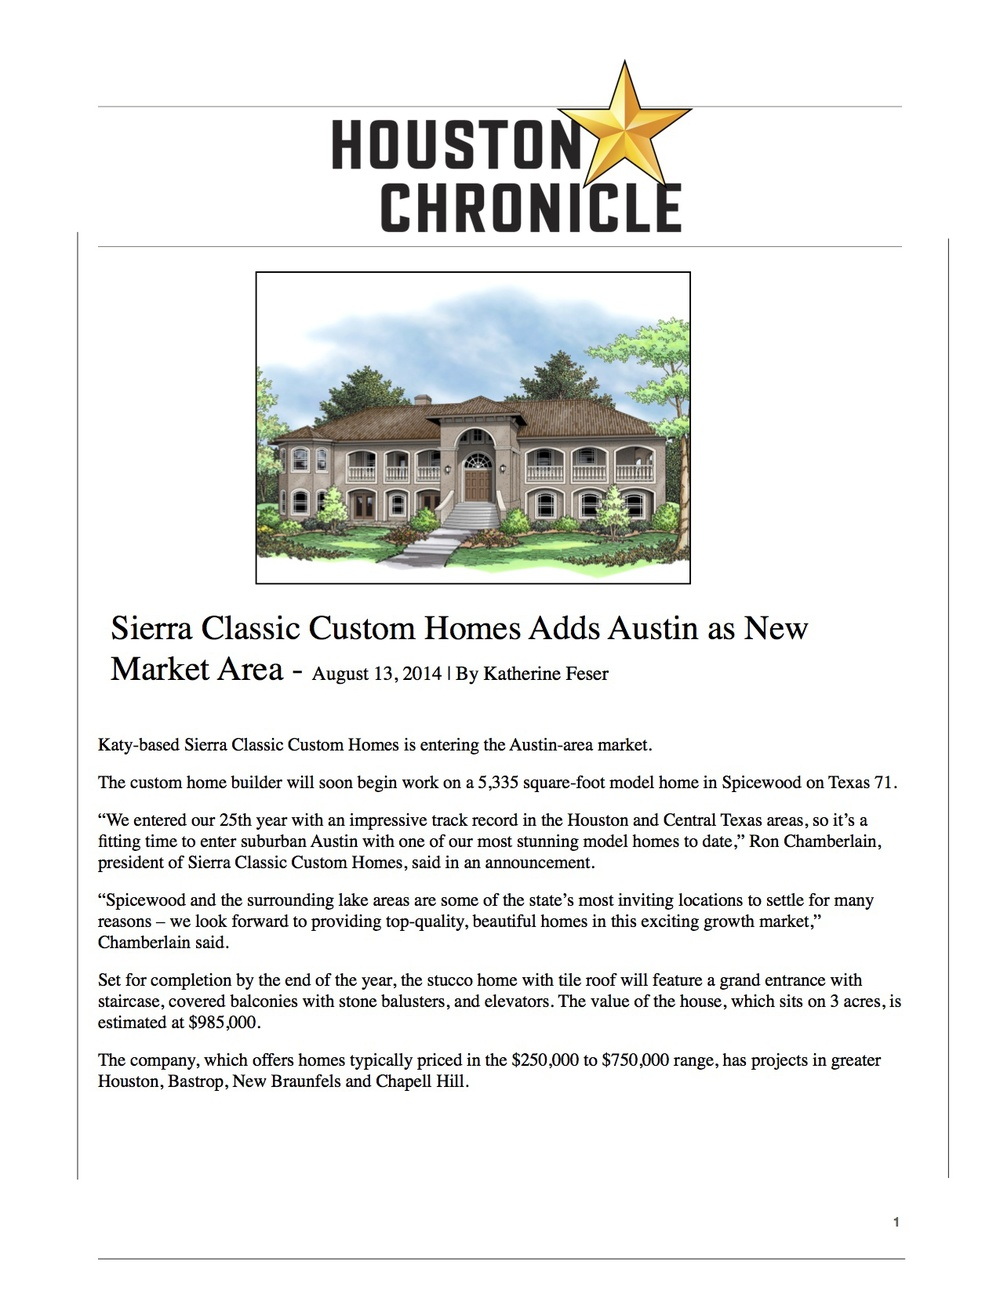 Sierra Classic Custom Homes: Houston Chronicle August 2014